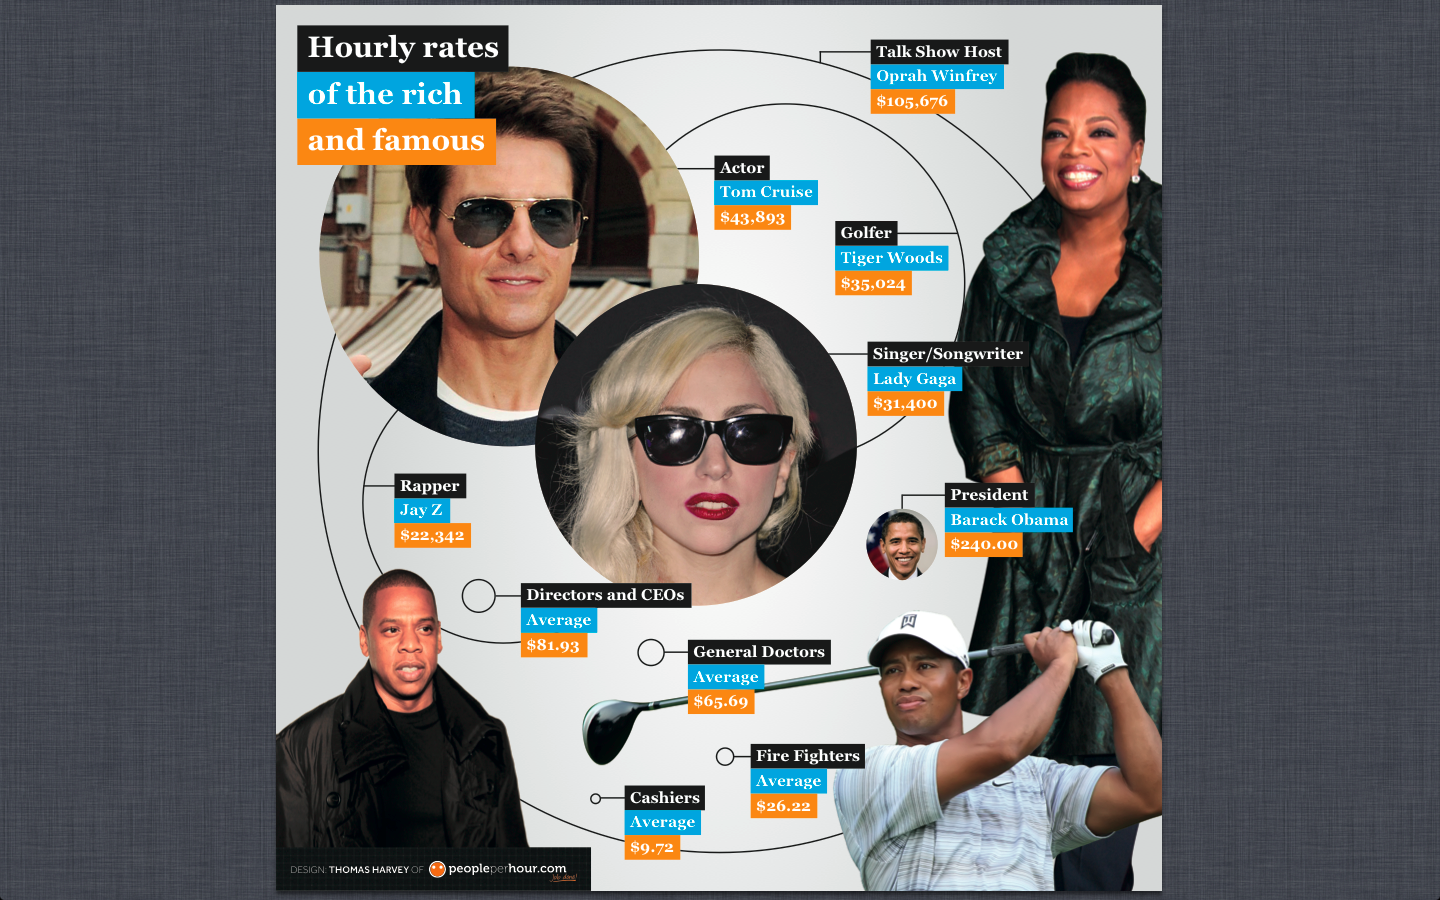 PPH Hourly Rates Infographic